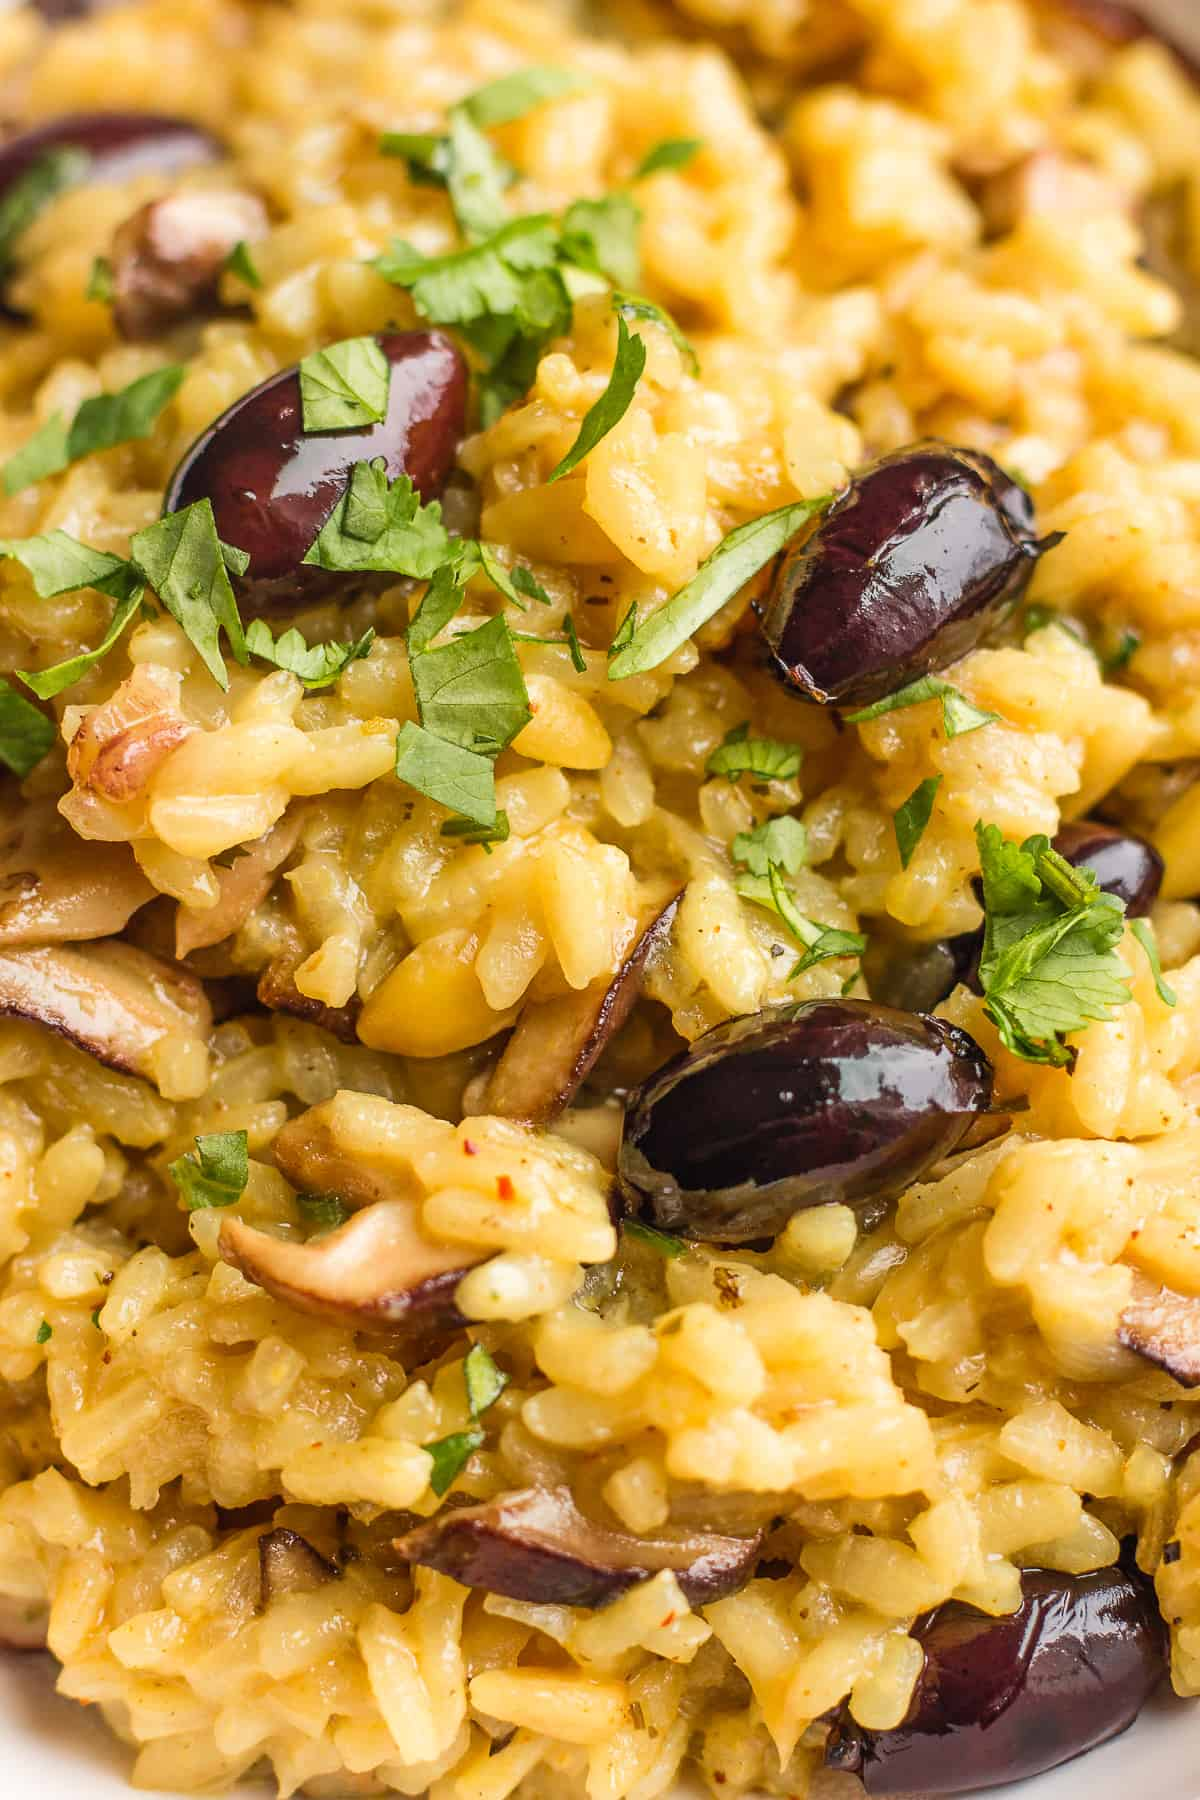 Upclose shot of Italian risotto with mushrooms, olives and pine nuts